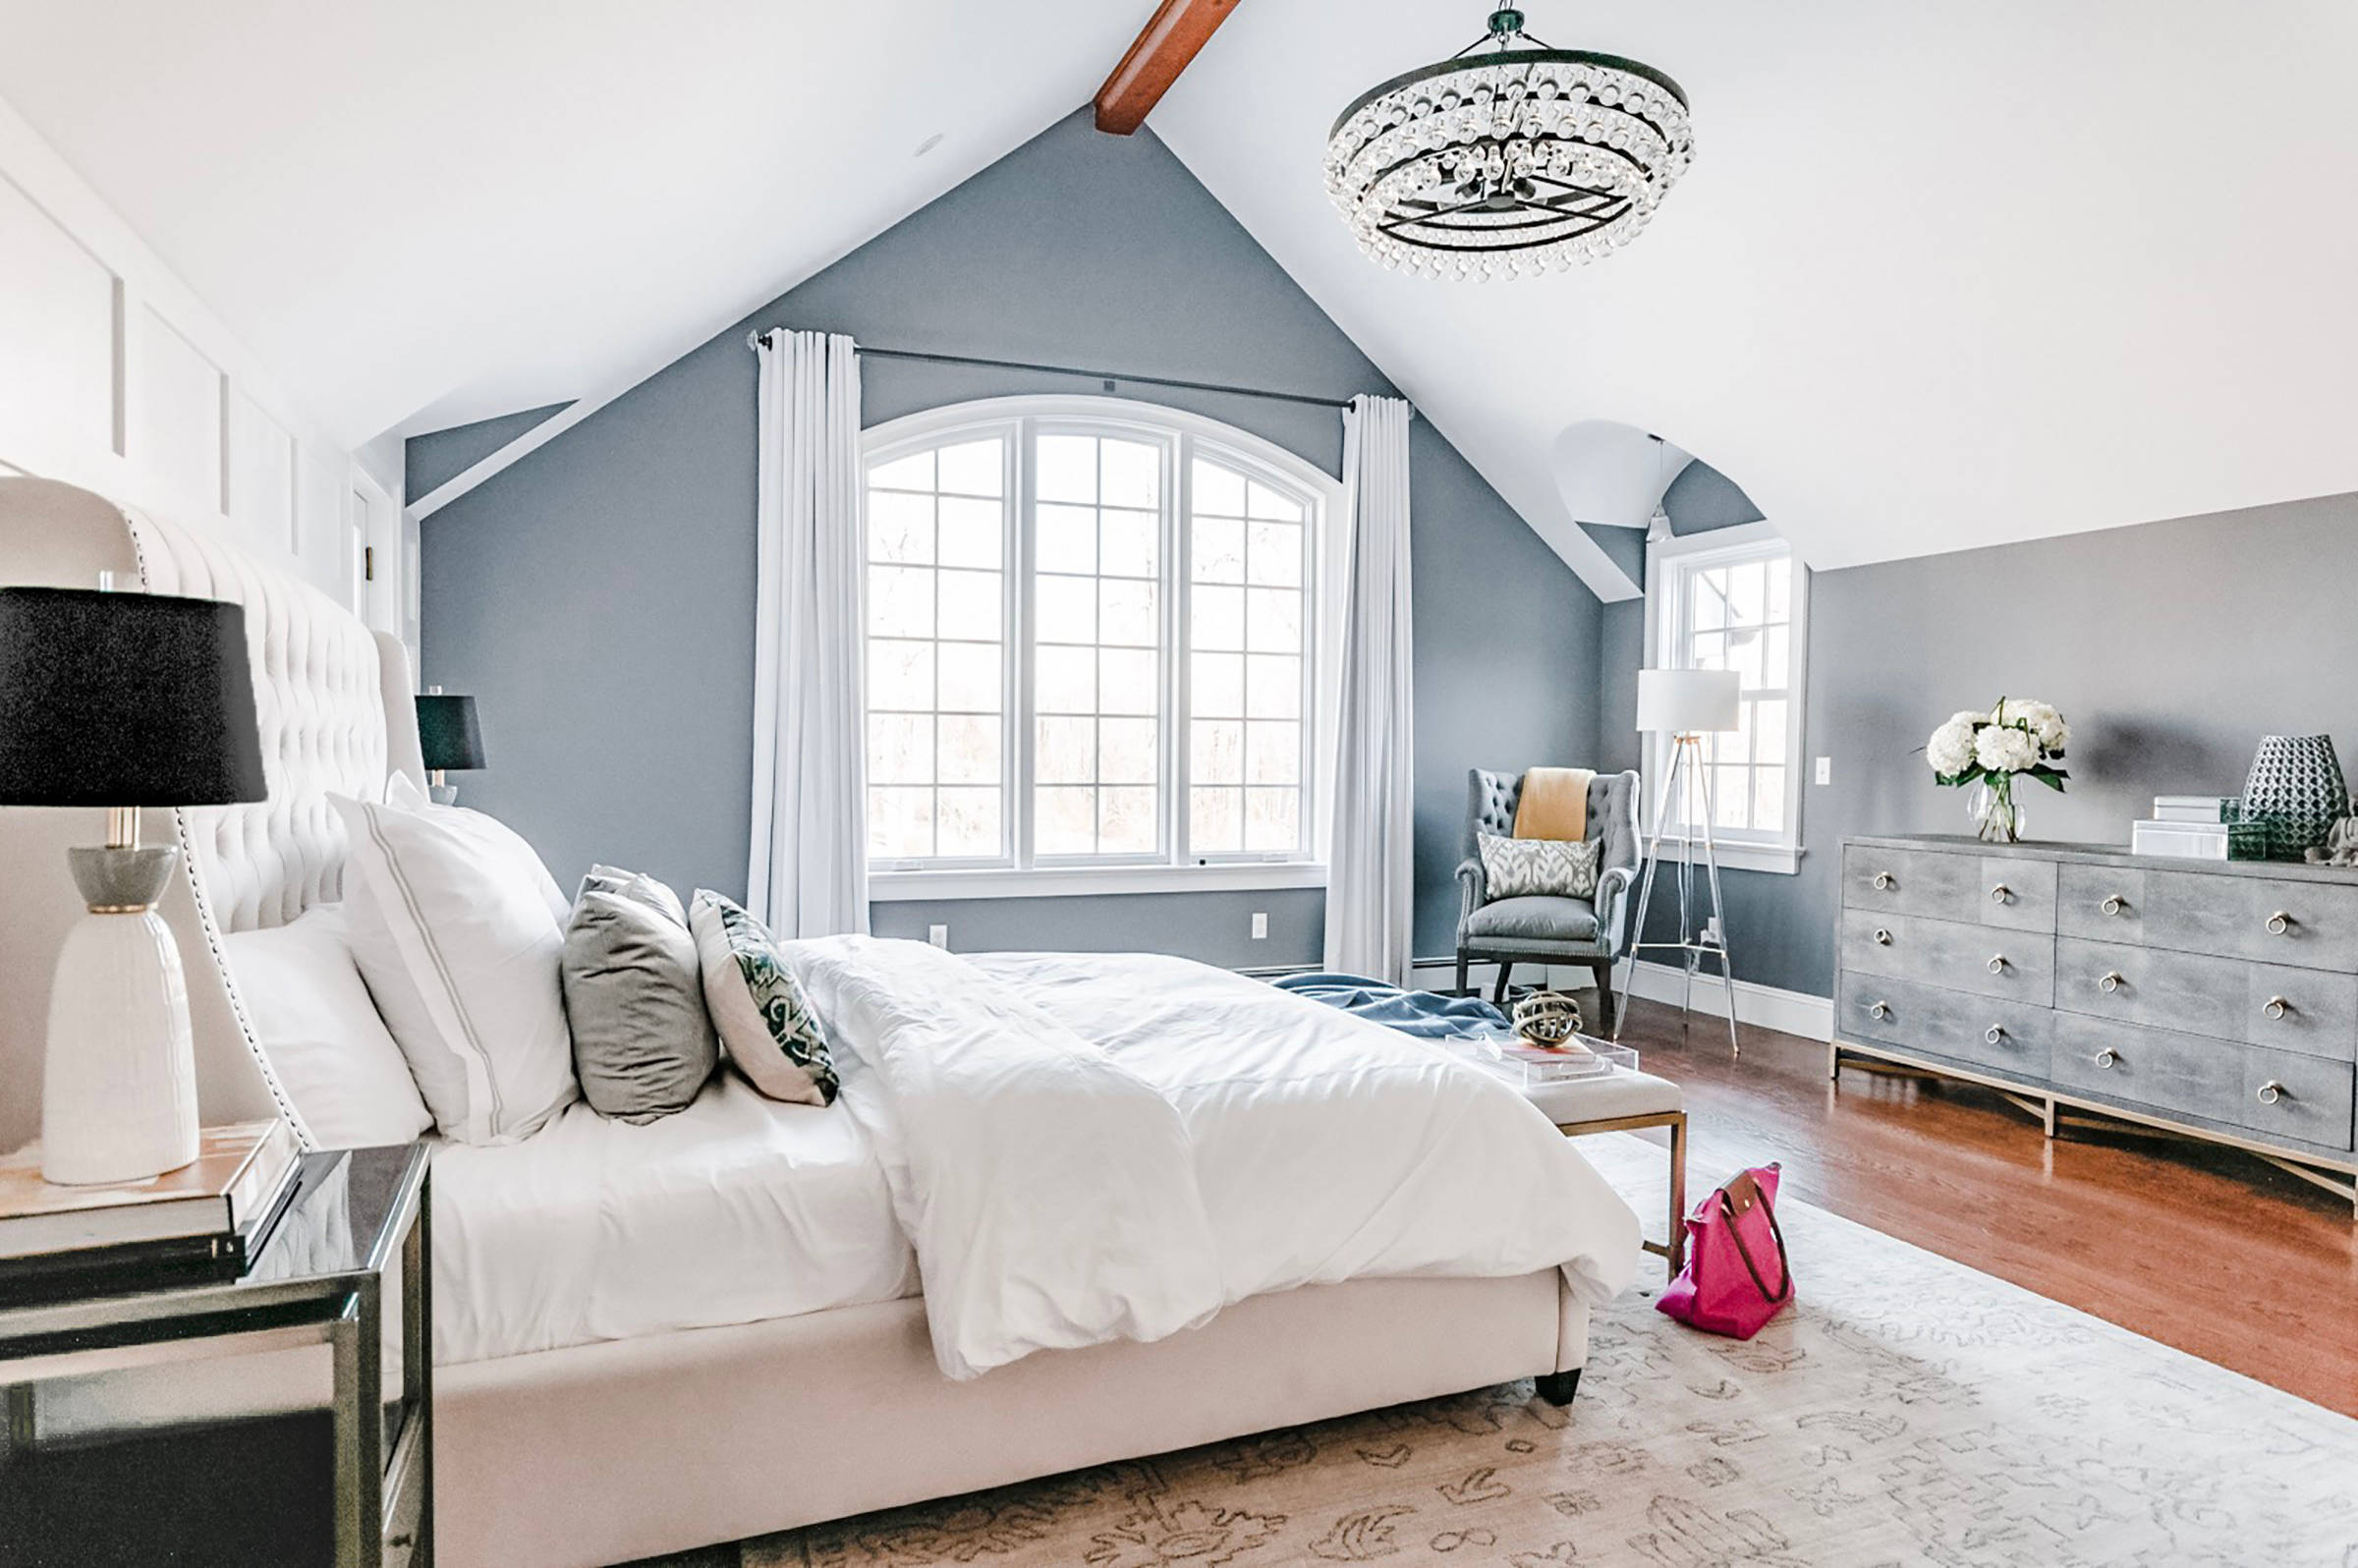 75 Beautiful Transitional Master Bedroom Pictures Ideas March 2021 Houzz